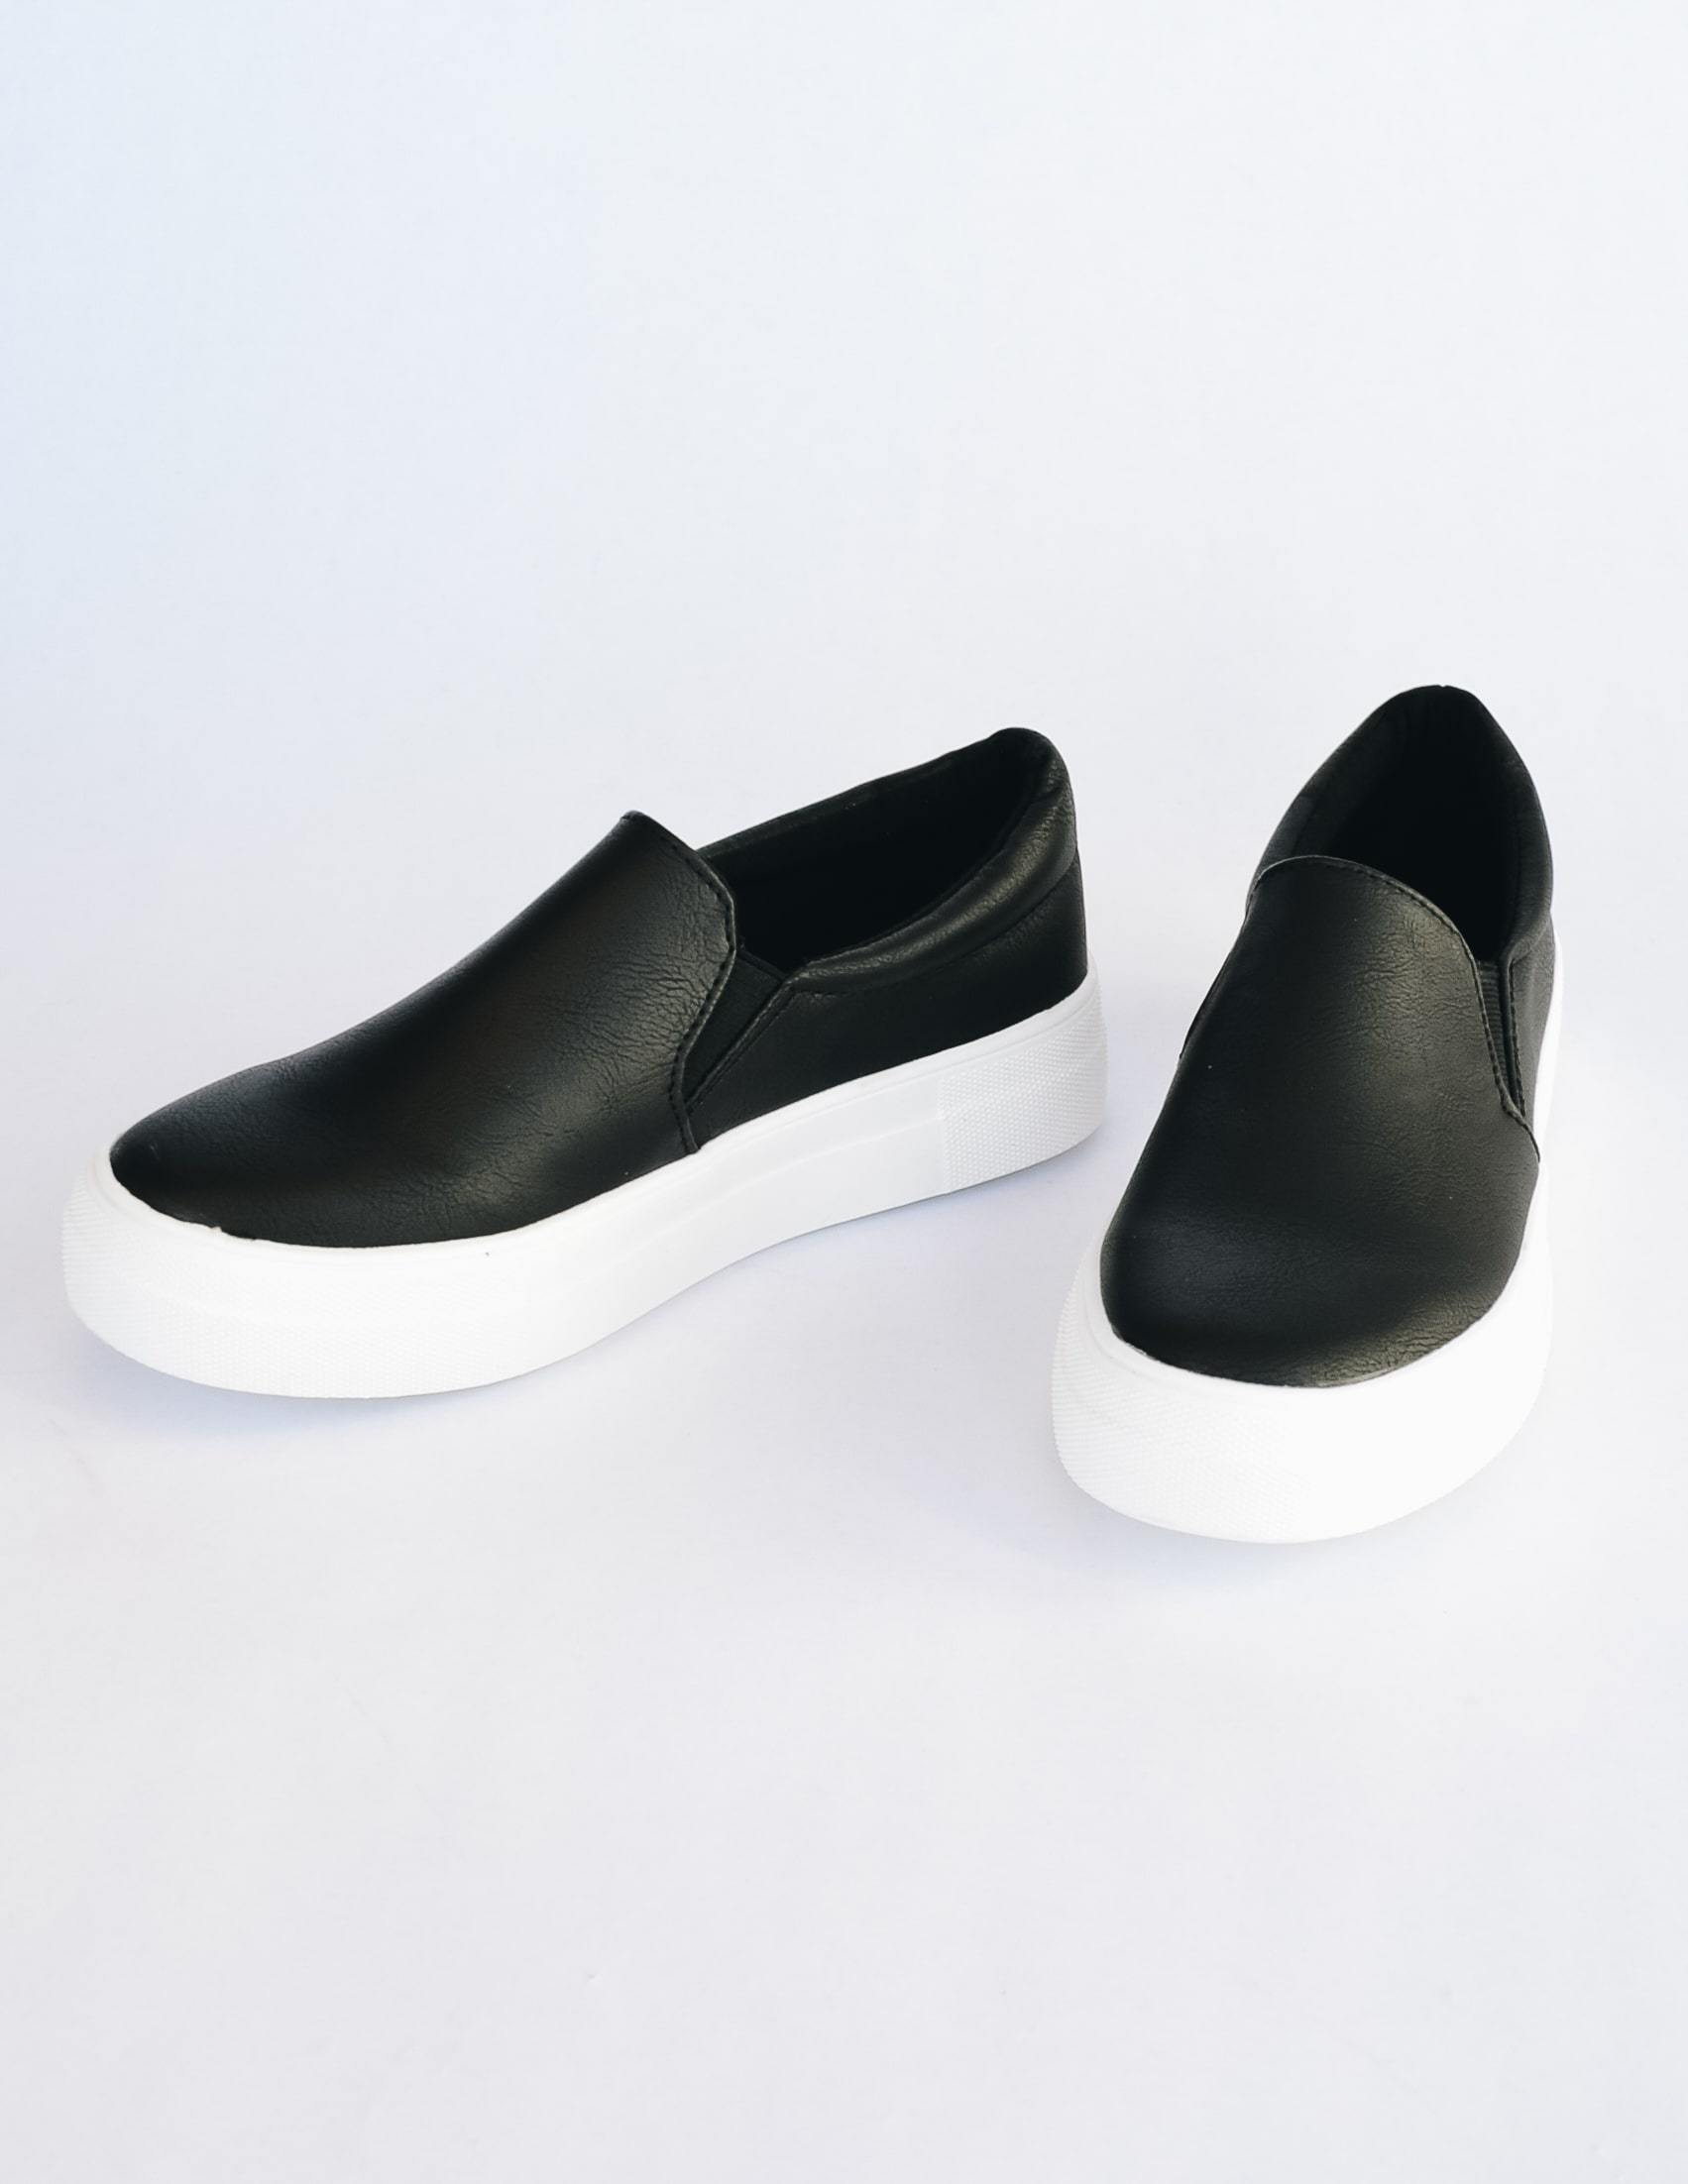 Black vegan leather slip on sneaker with white vulcanized rubber sole